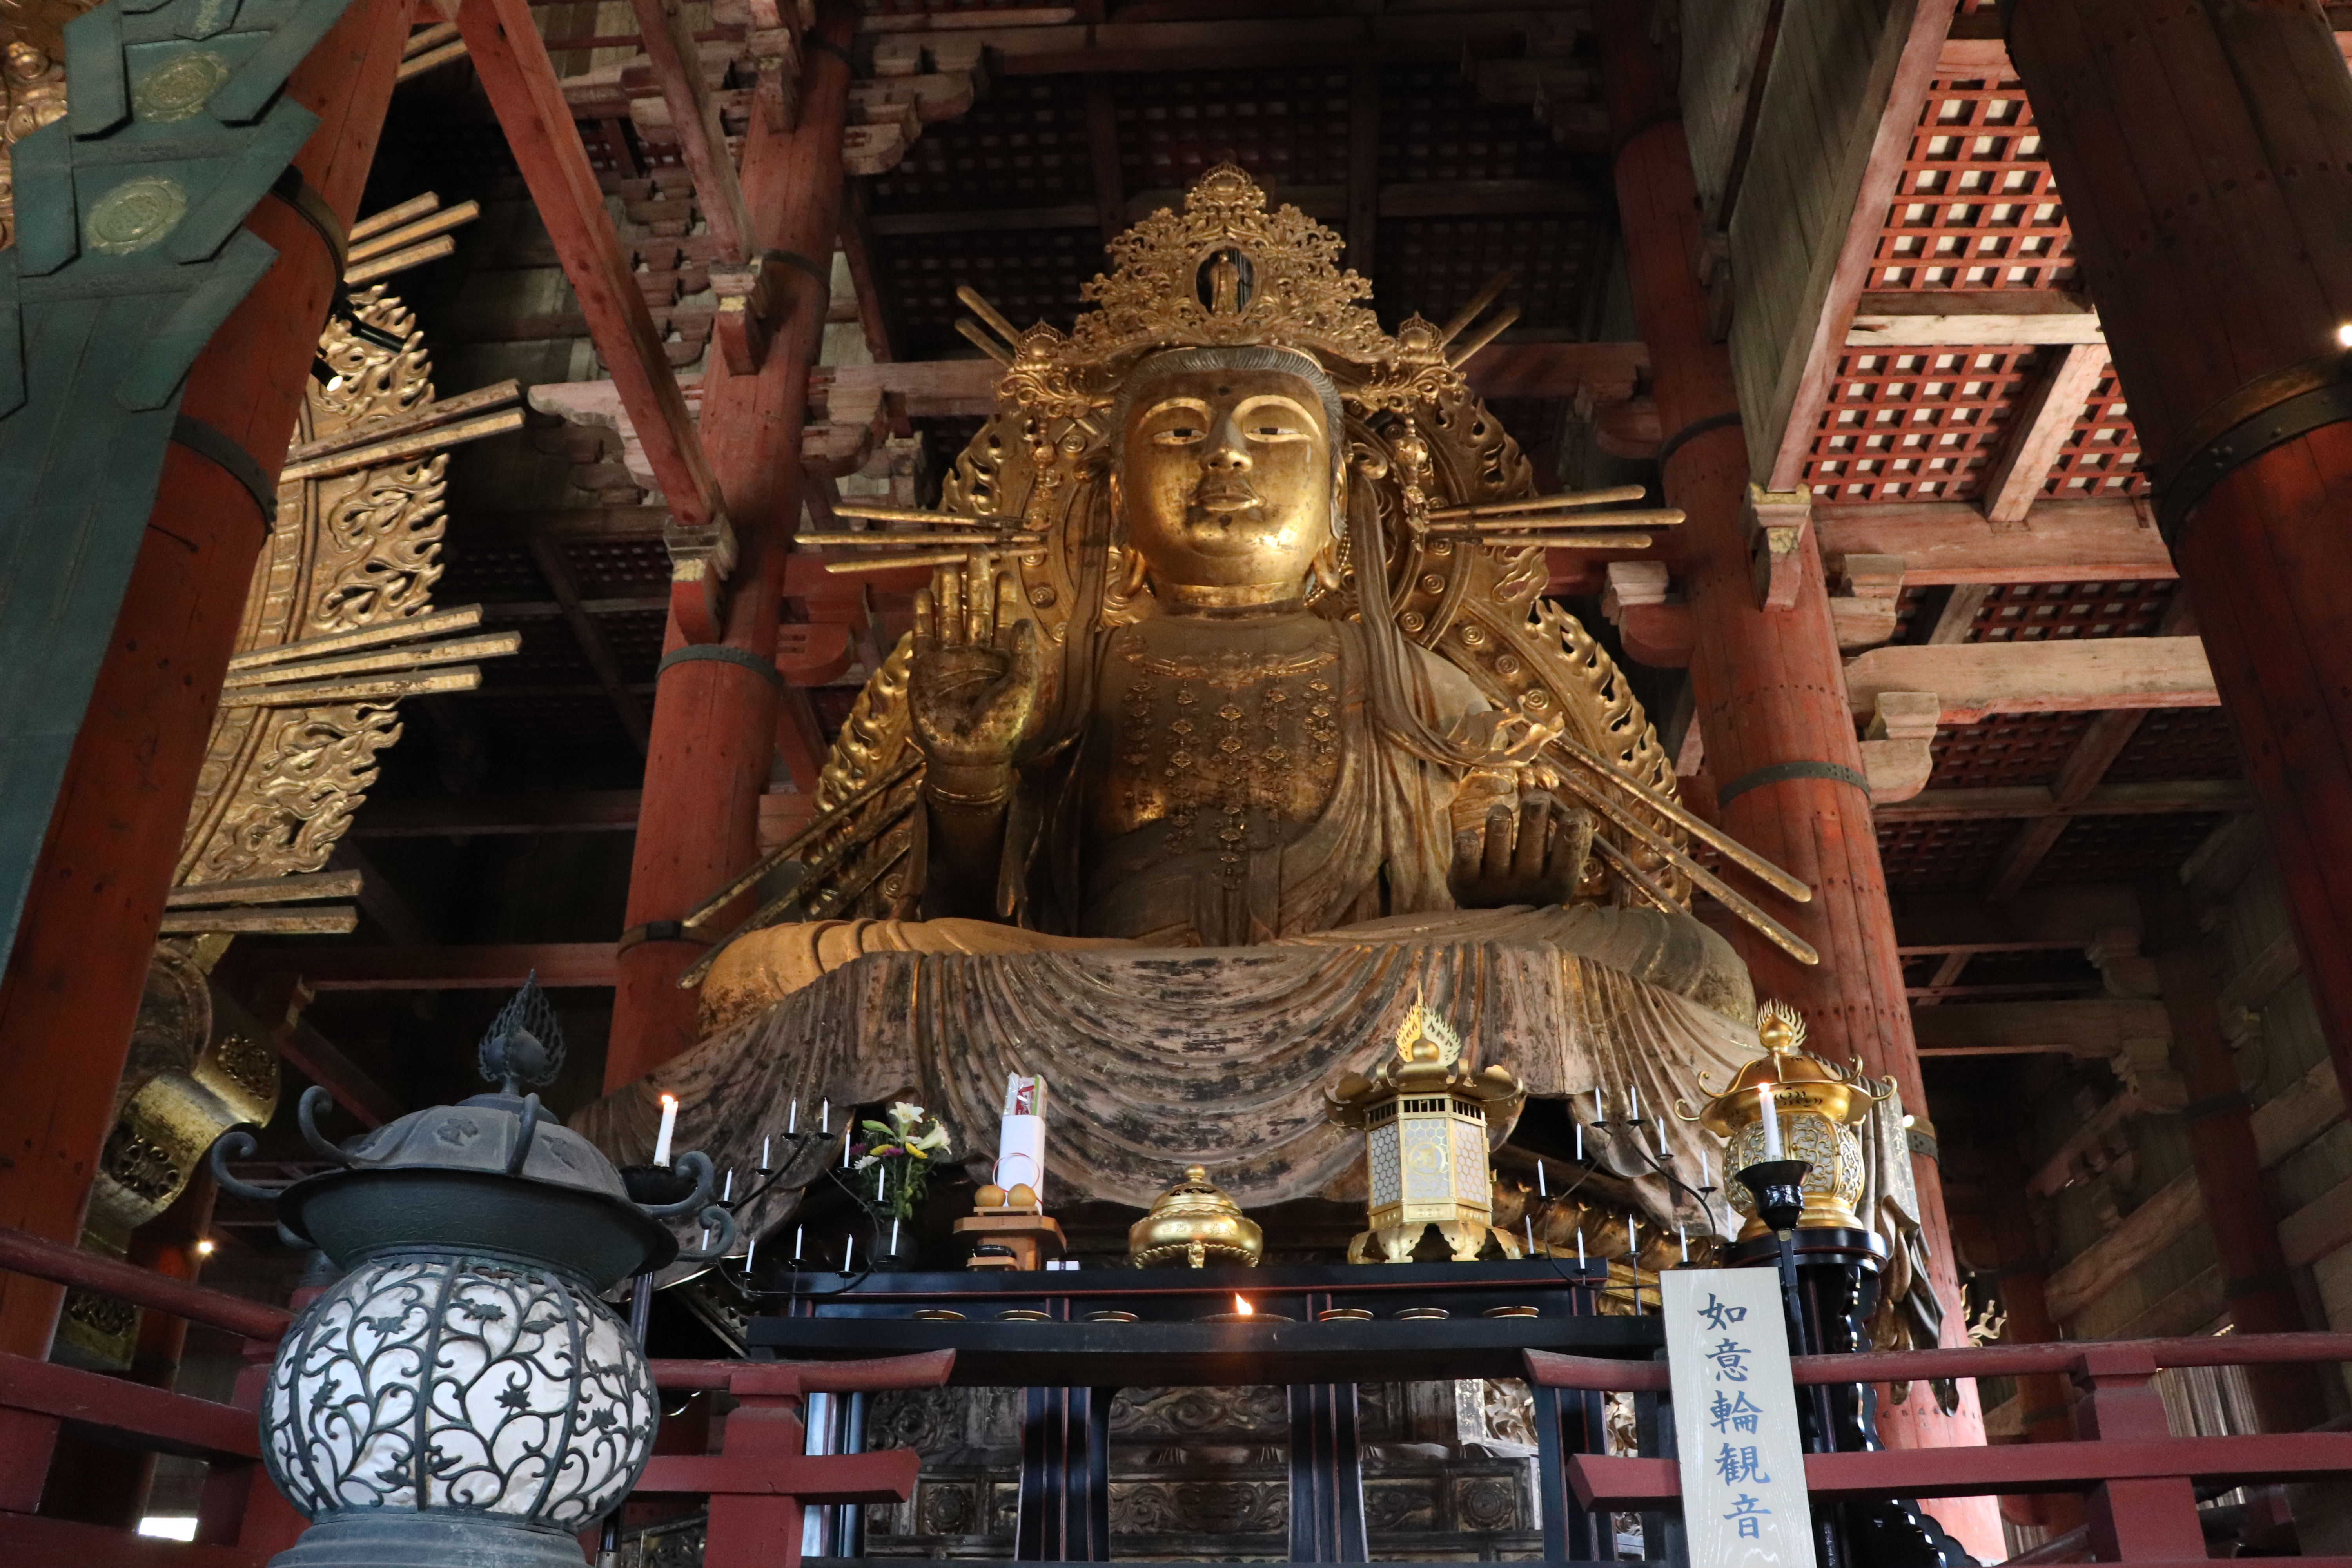 Nyorin Kannon next to the Daibutsu in Todai-ji Temple